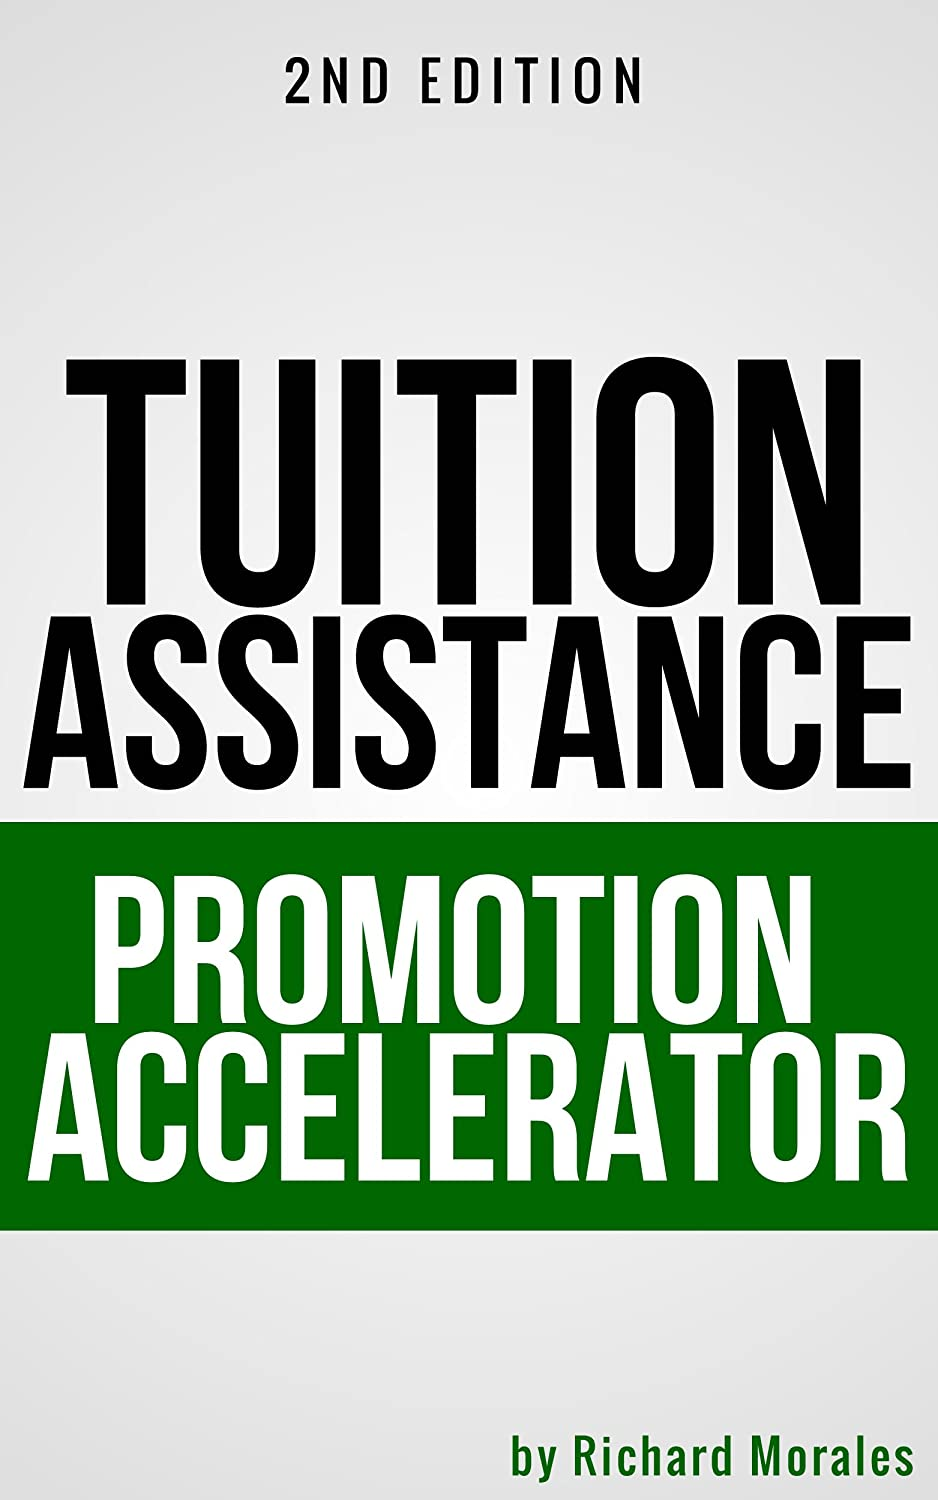 tuition-assistance-by-richard-morales